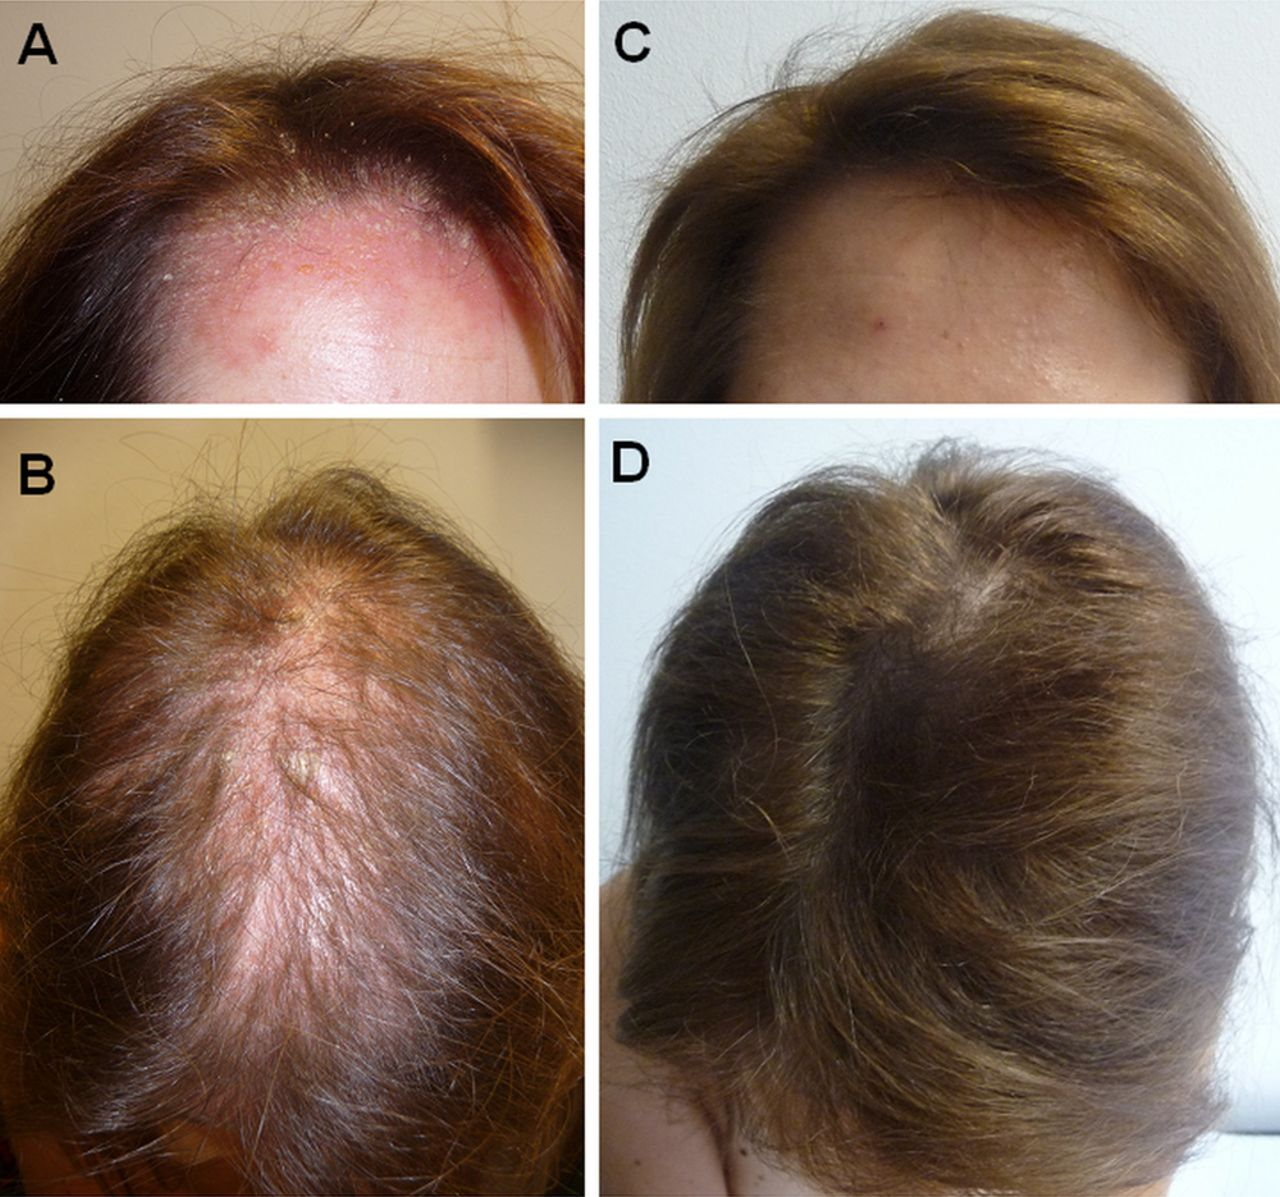 Anti Tnf Antibody Induced Psoriasiform Skin Lesions In Patients With